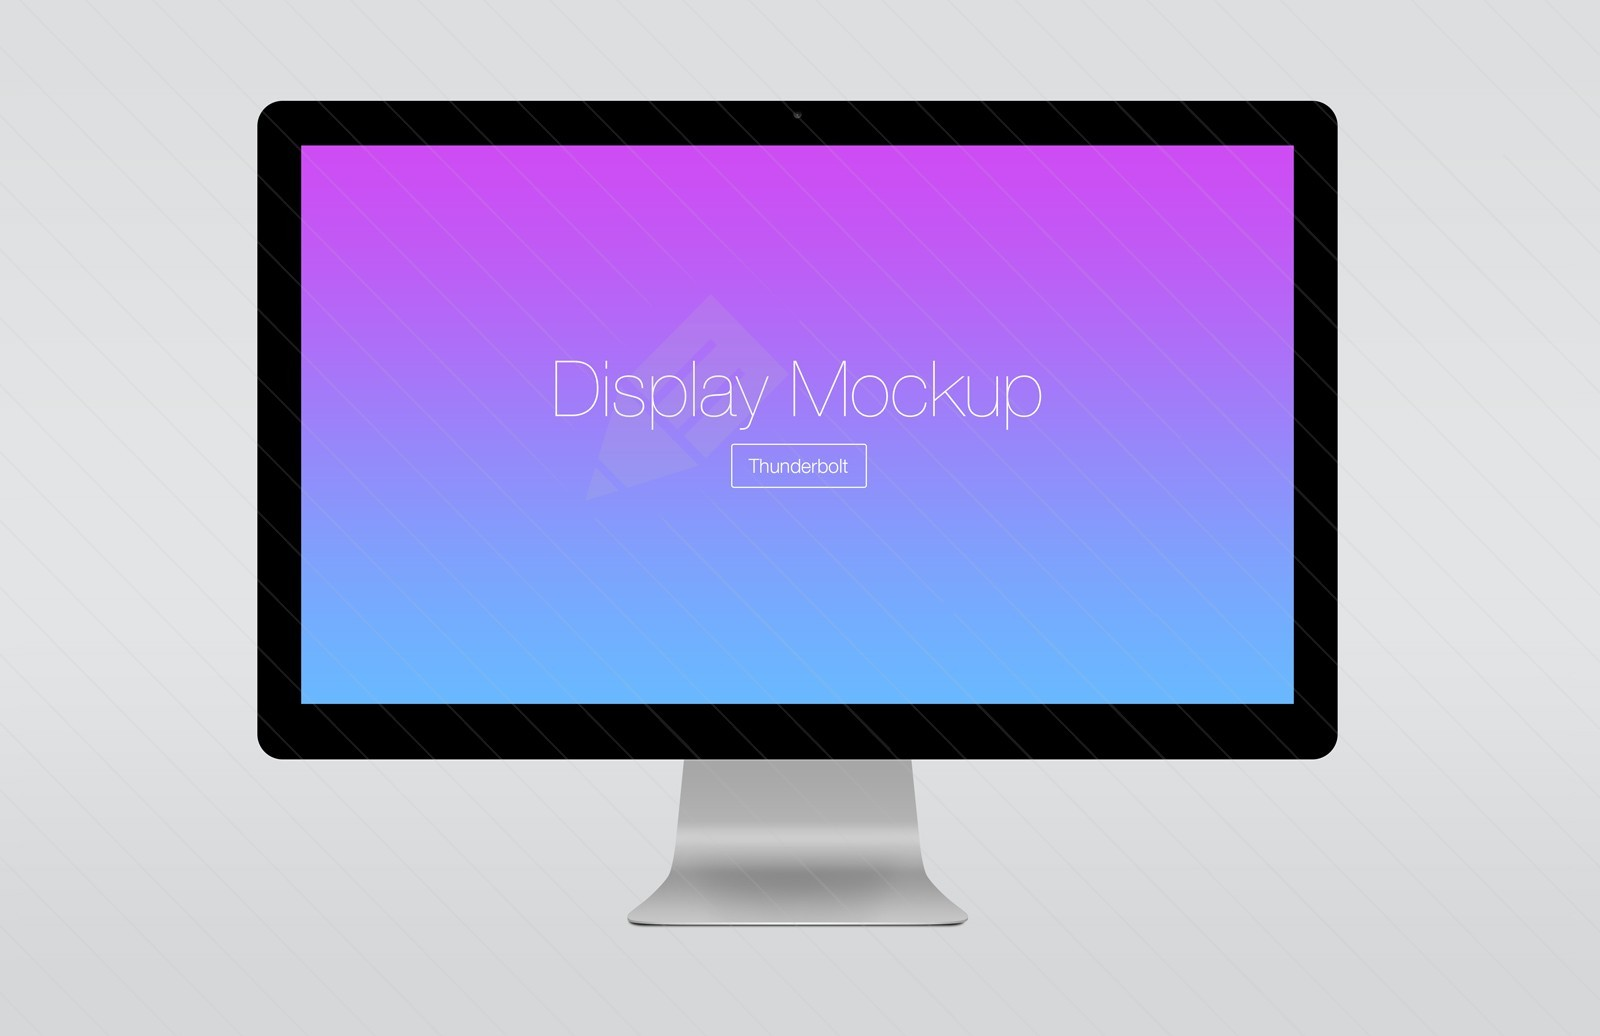 1600X1036  Angled  Thunderbolt  Display  Mockup  Preview 2